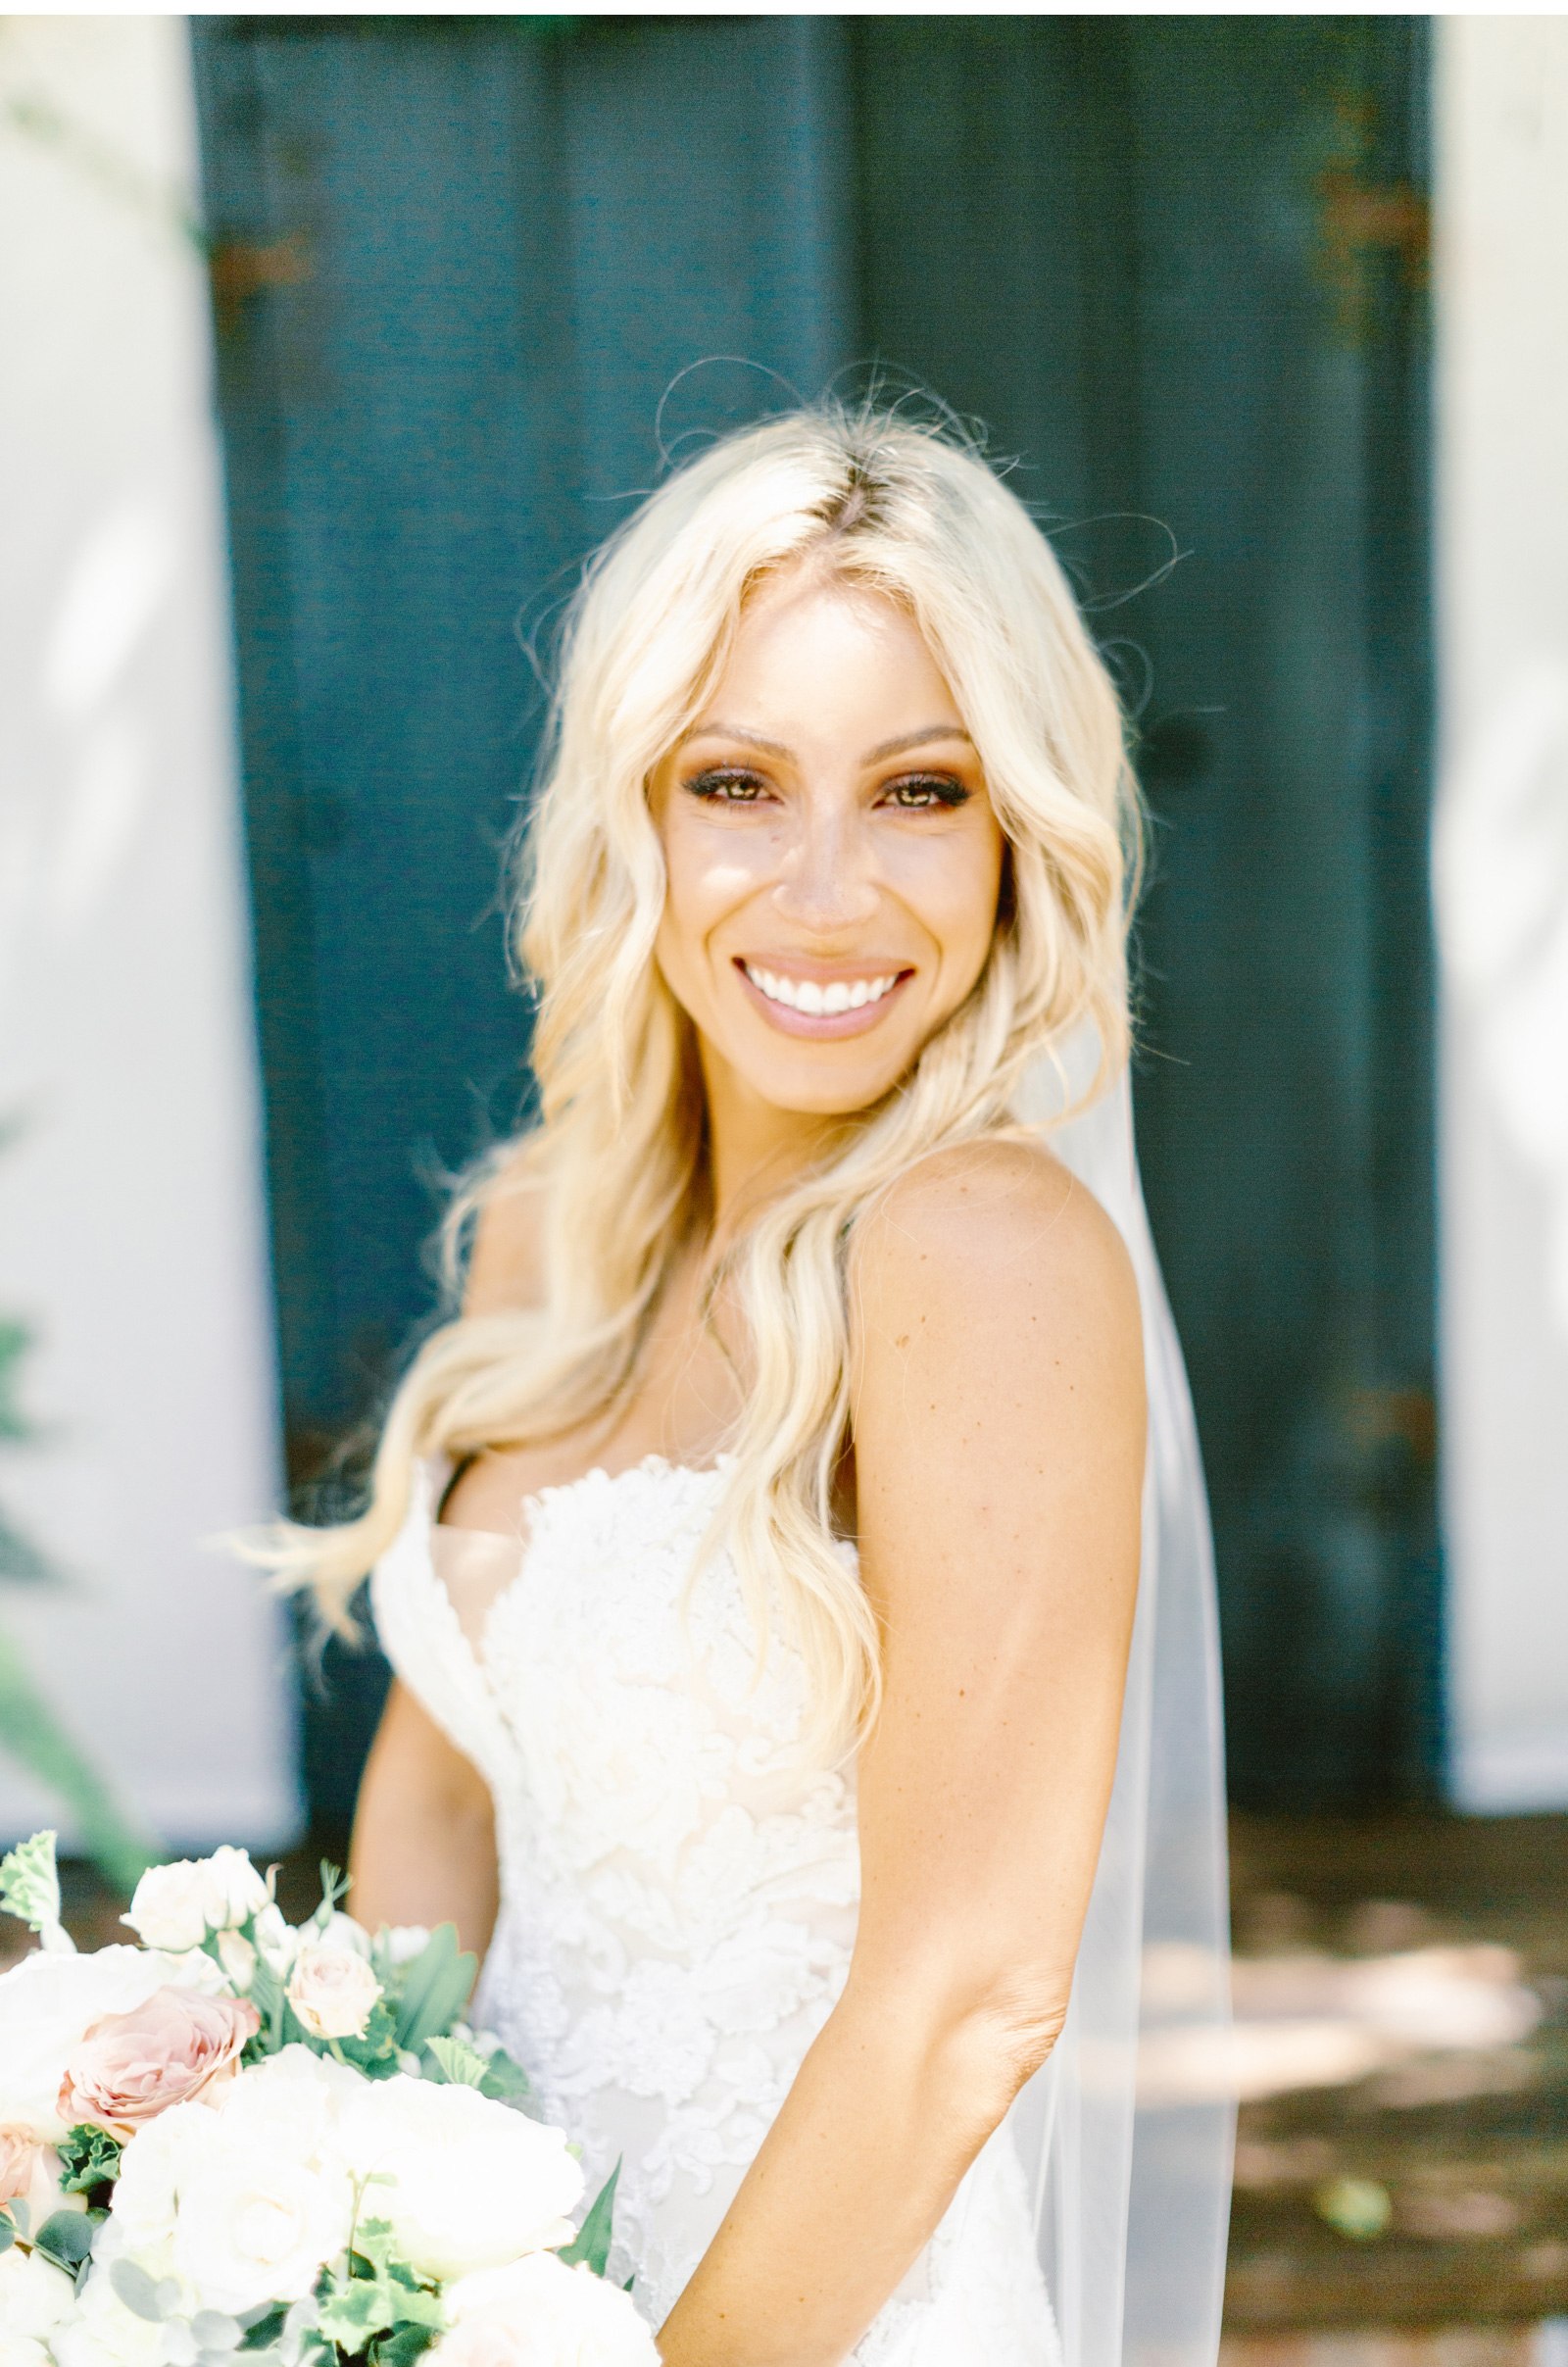 Saddle-Rock-Ranch-Photographer-Malibu-Weddings-San-Juan-Capistrano-Wedding-Venue-Natalie-Schutt-Photography_10.jpg